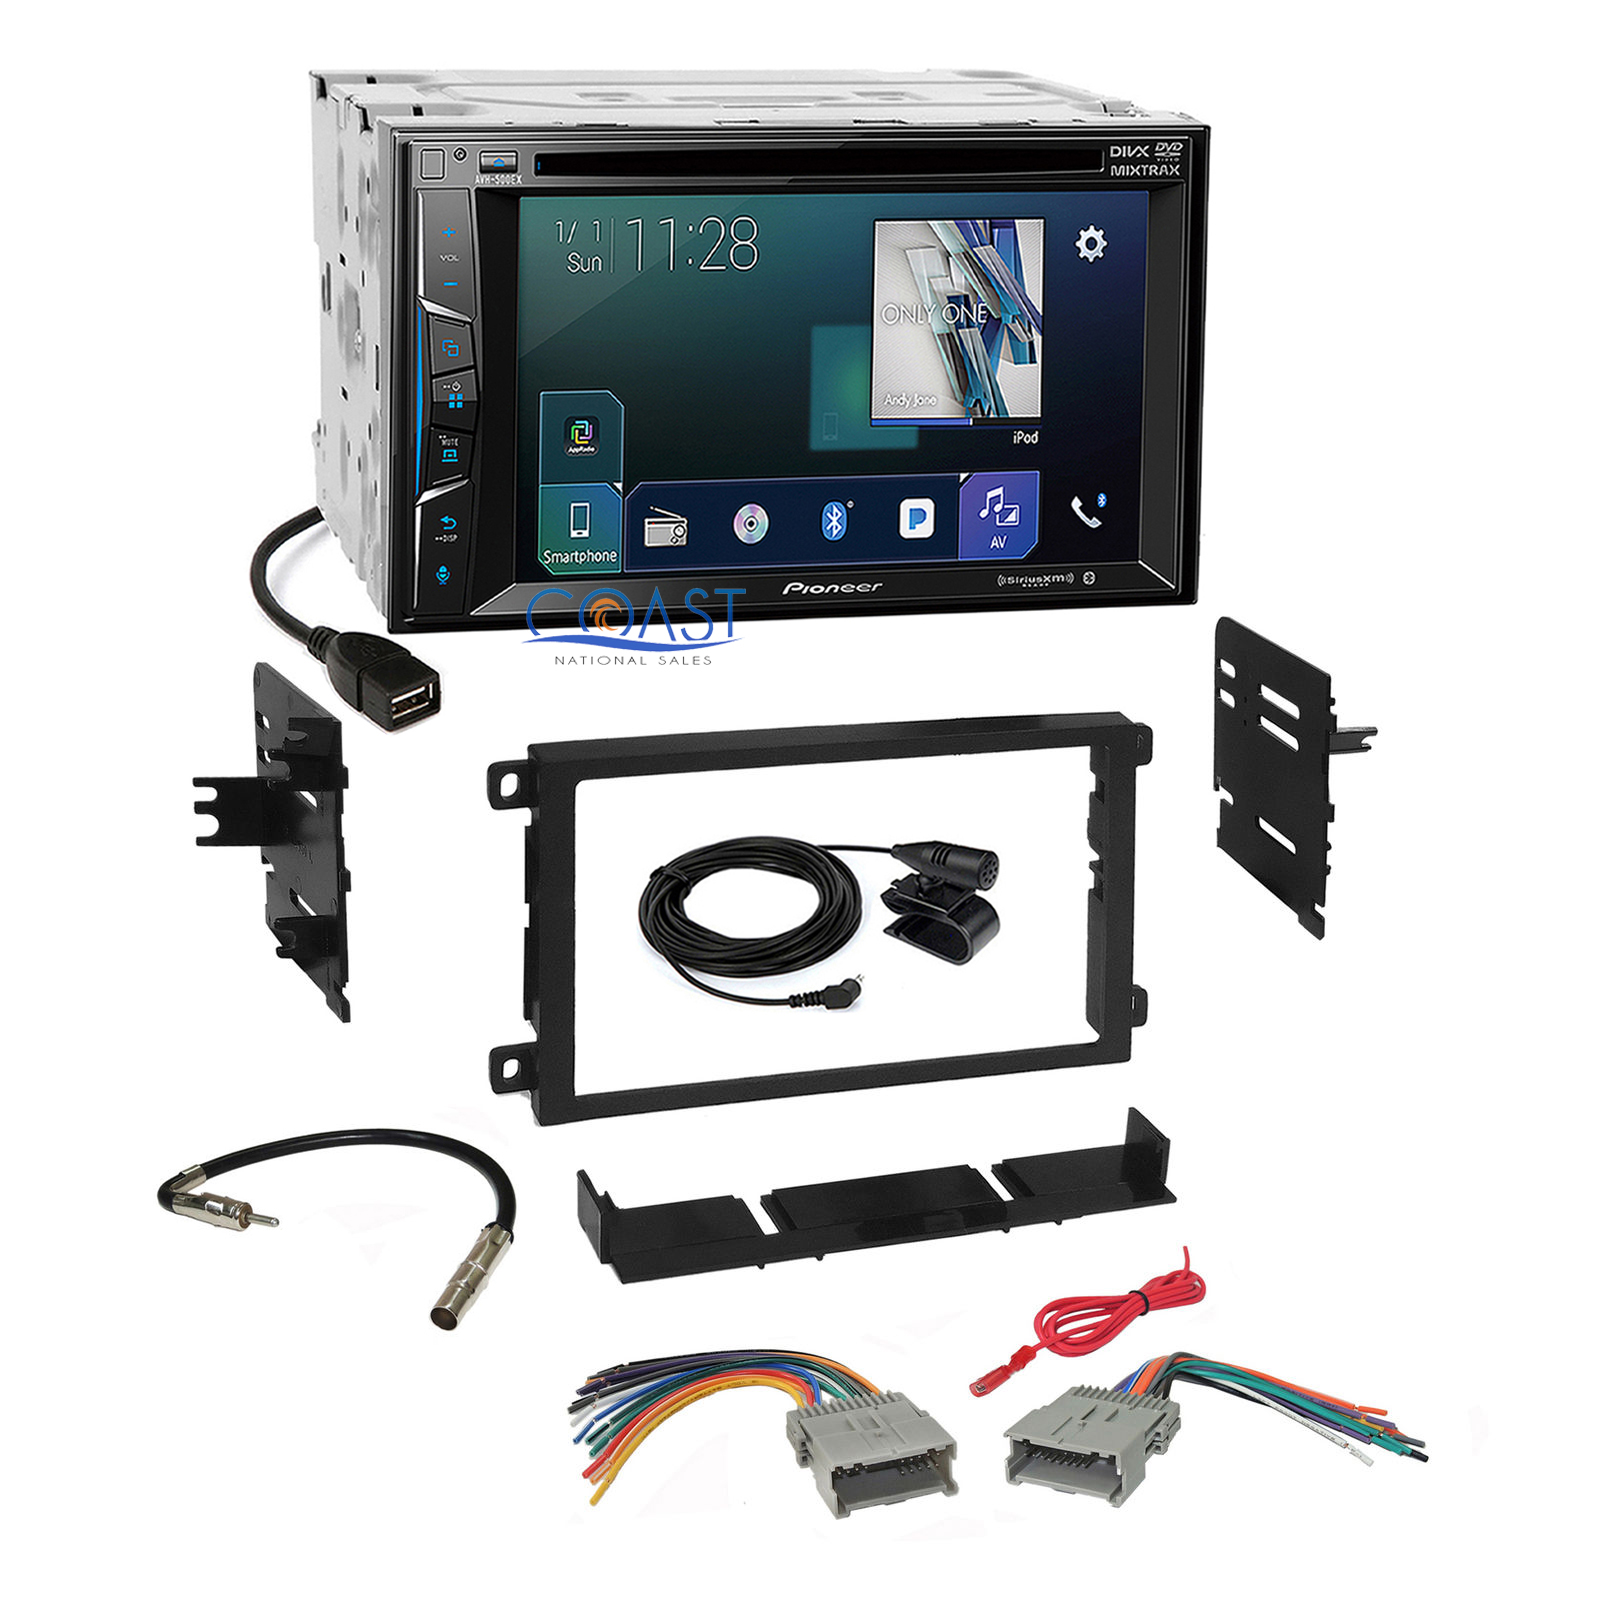 hight resolution of details about pioneer sirius appradio stereo dash kit harness for 1992 chevrolet gmc pontiac